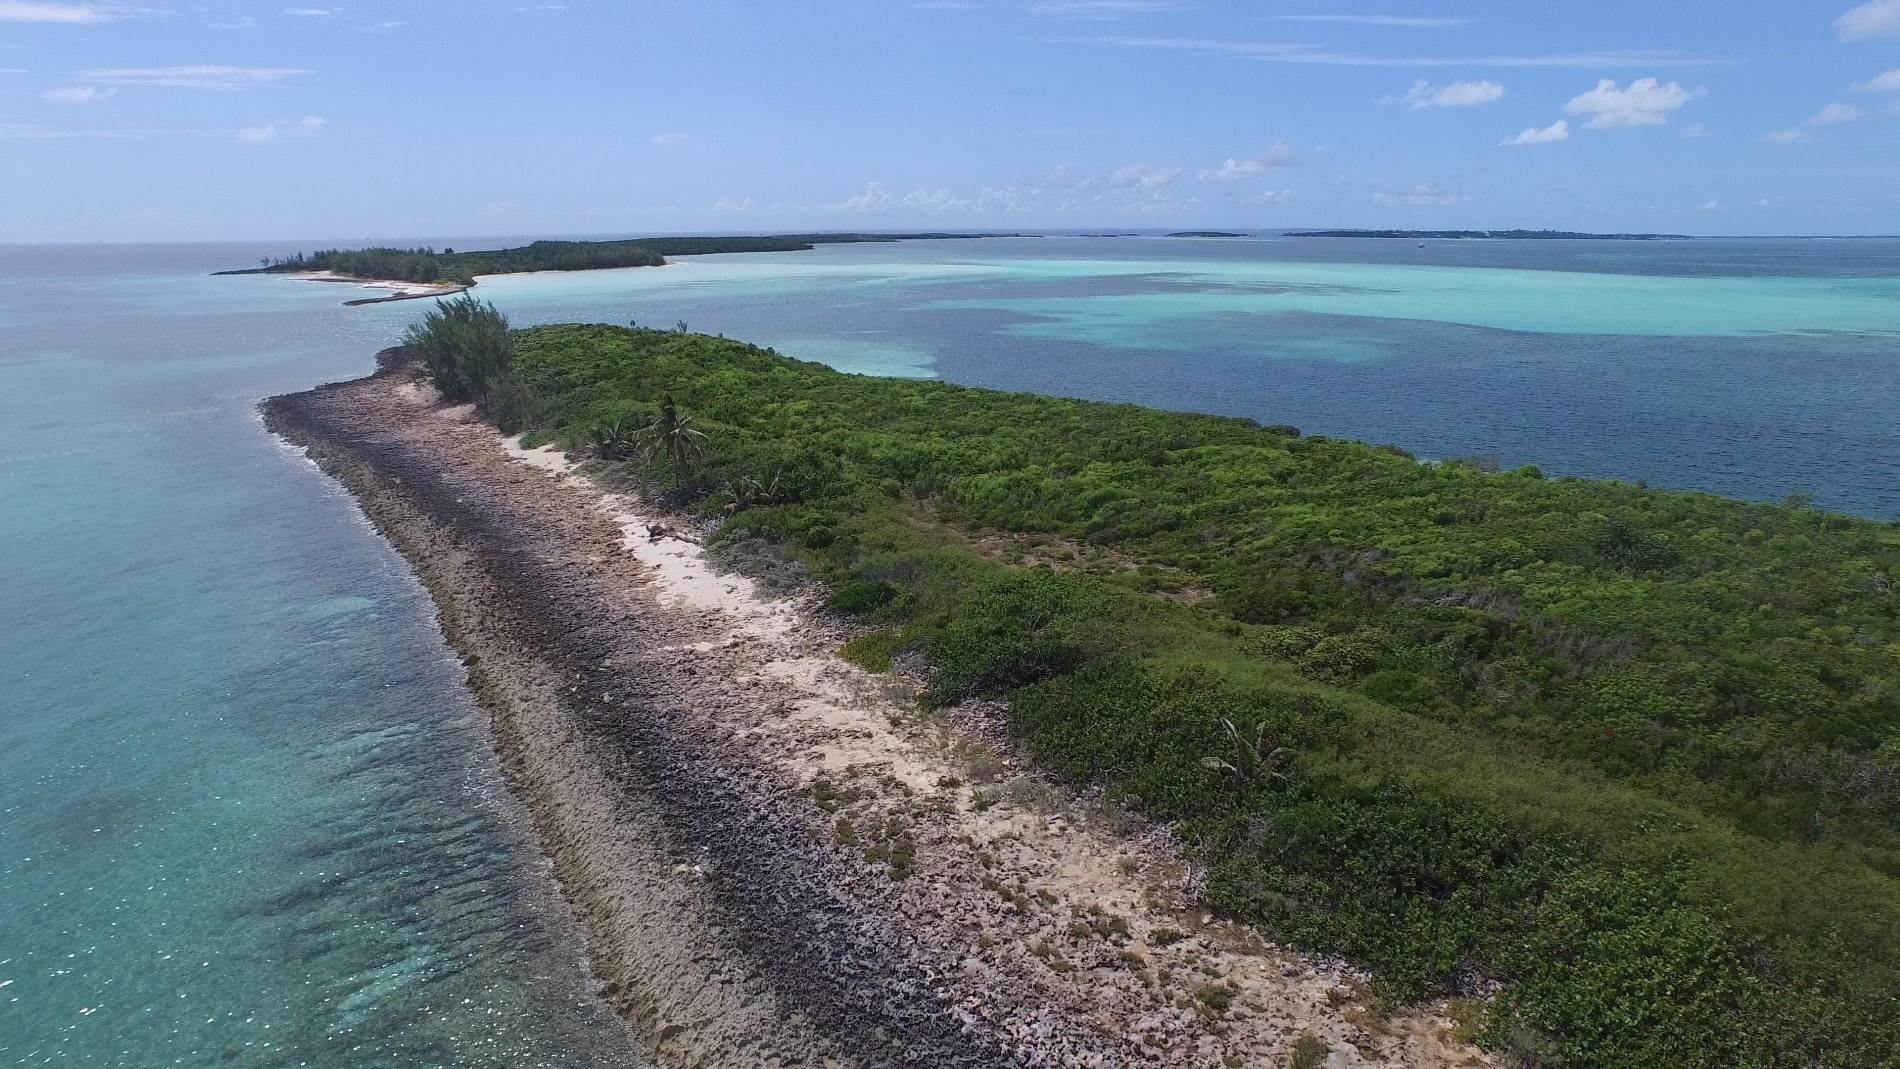 21. Private Islands for Sale at Pierre Island, A Perfect Private Retreat Island Near Harbour Island - MLS 40806 Harbour Island, Eleuthera, Bahamas